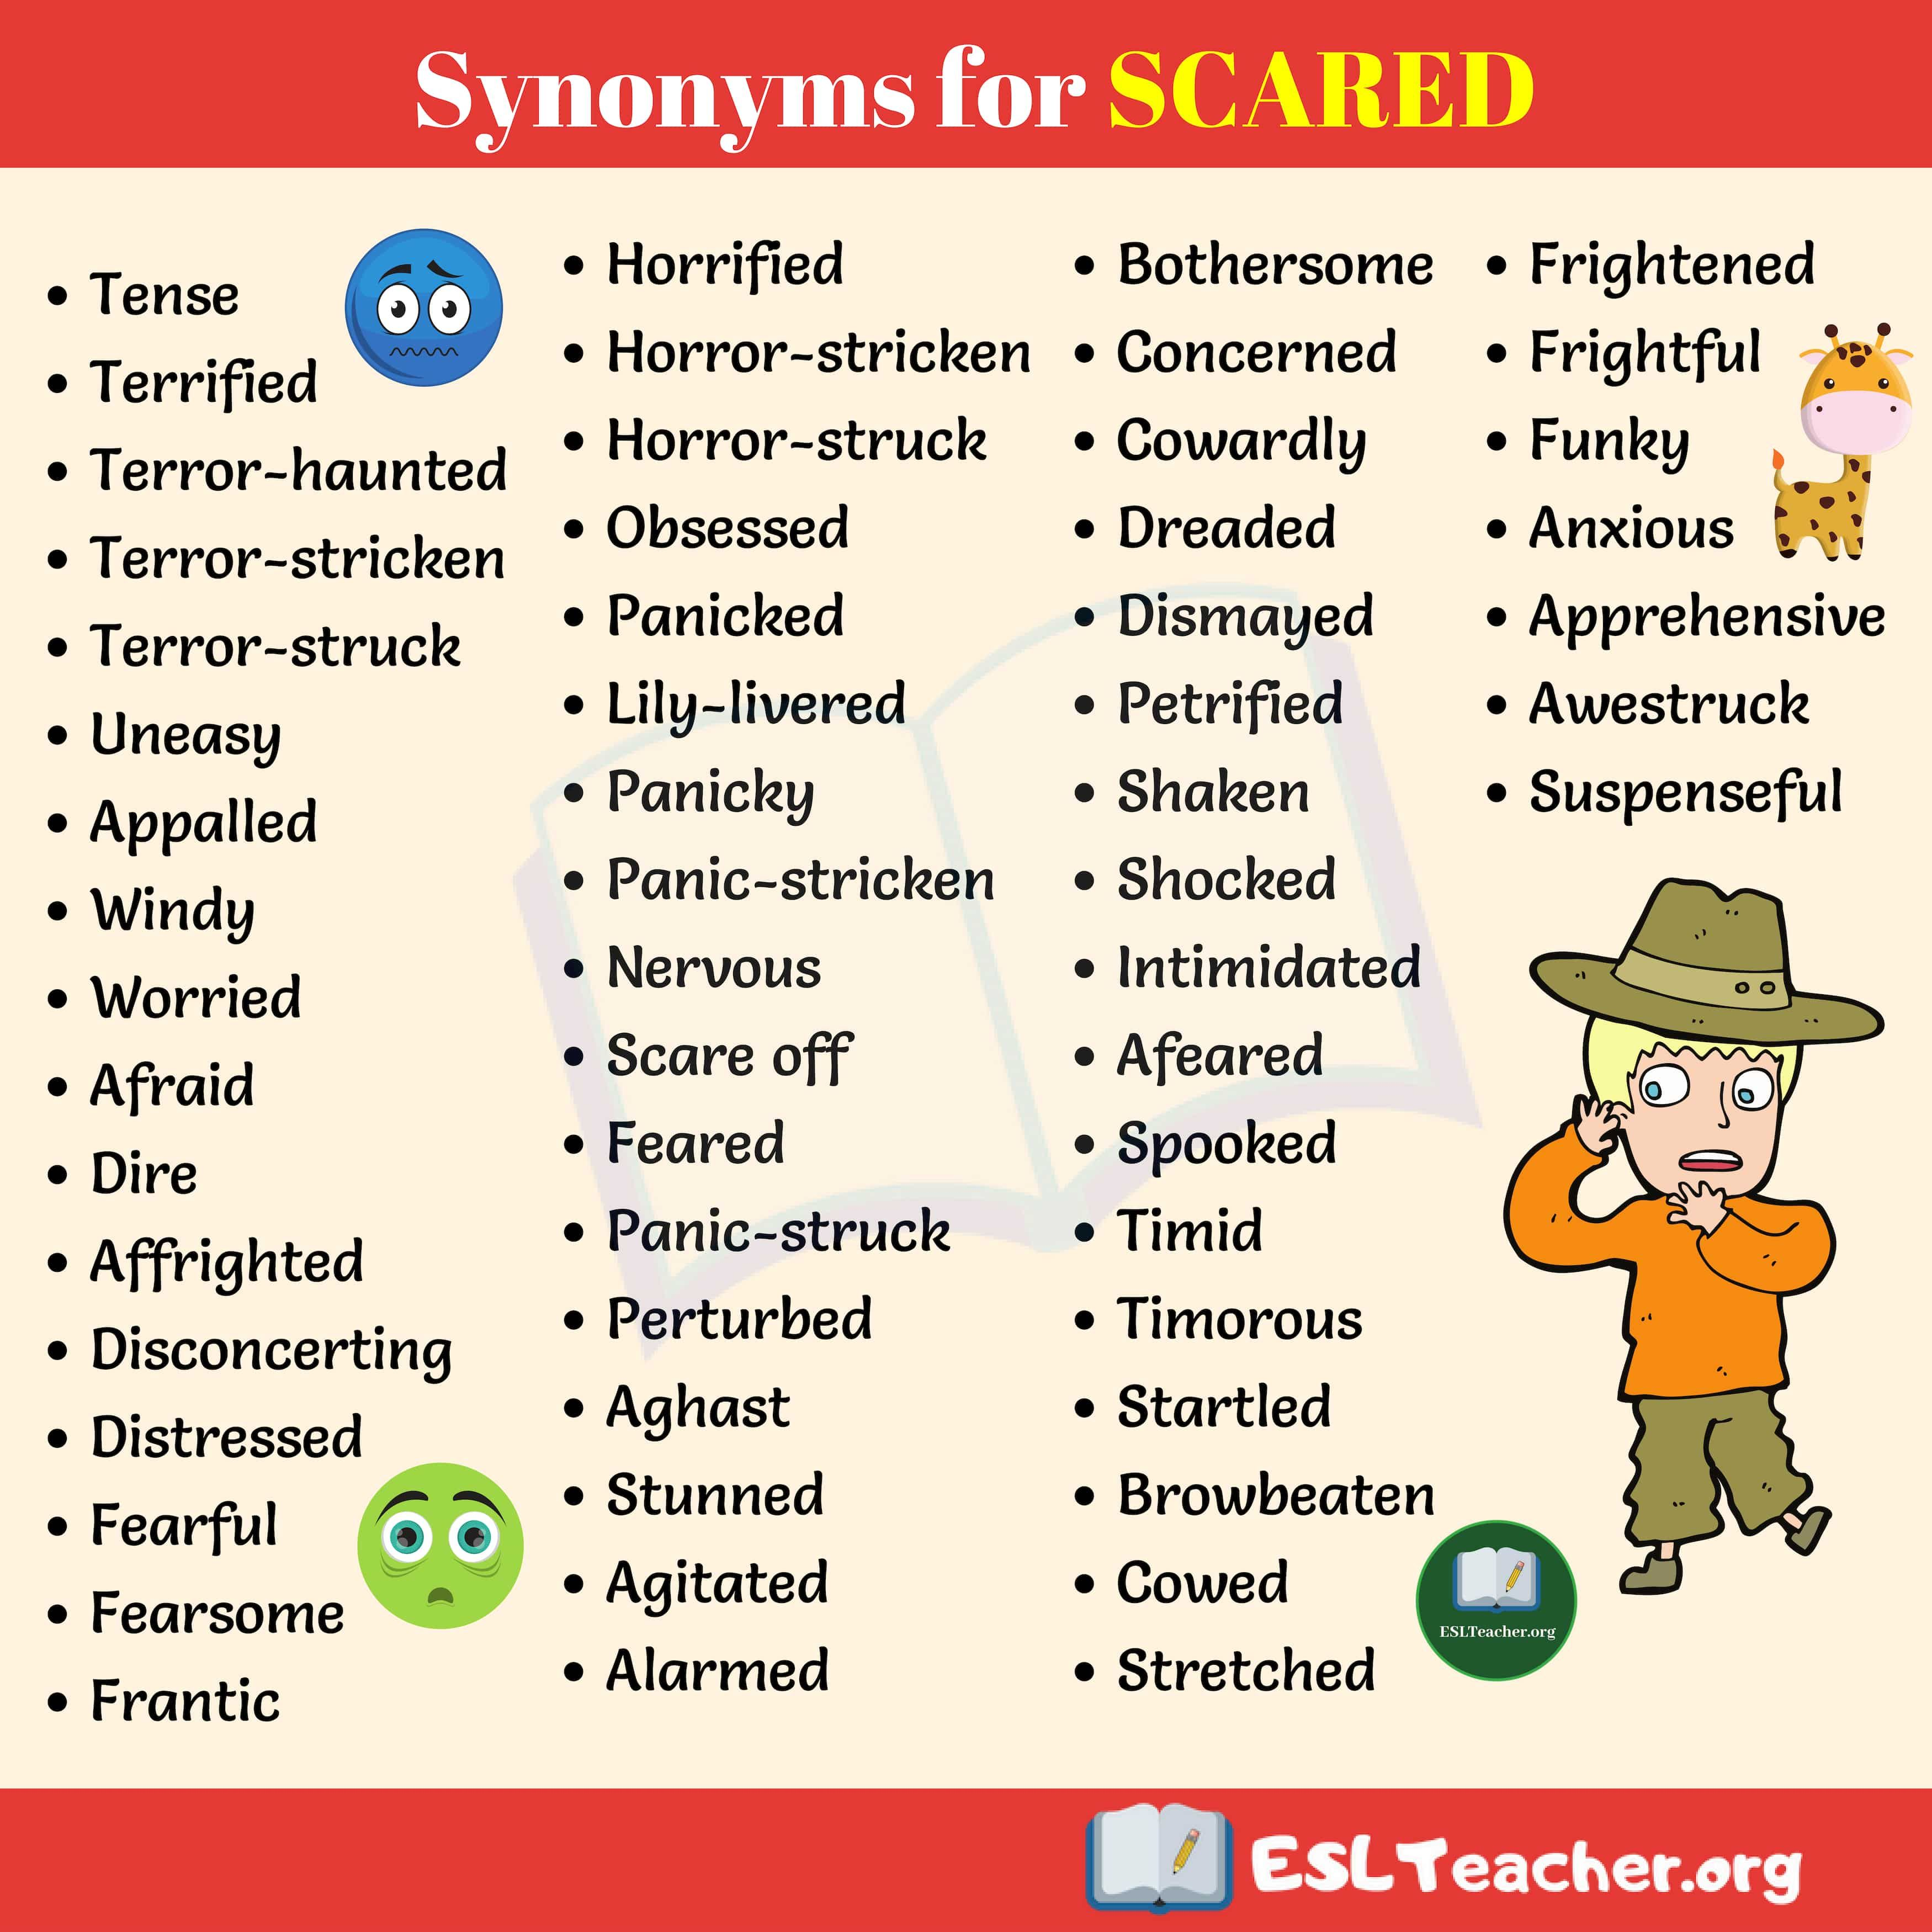 Synonyms for SCARED | Words for scared, Synonyms for scared, Learn english  words